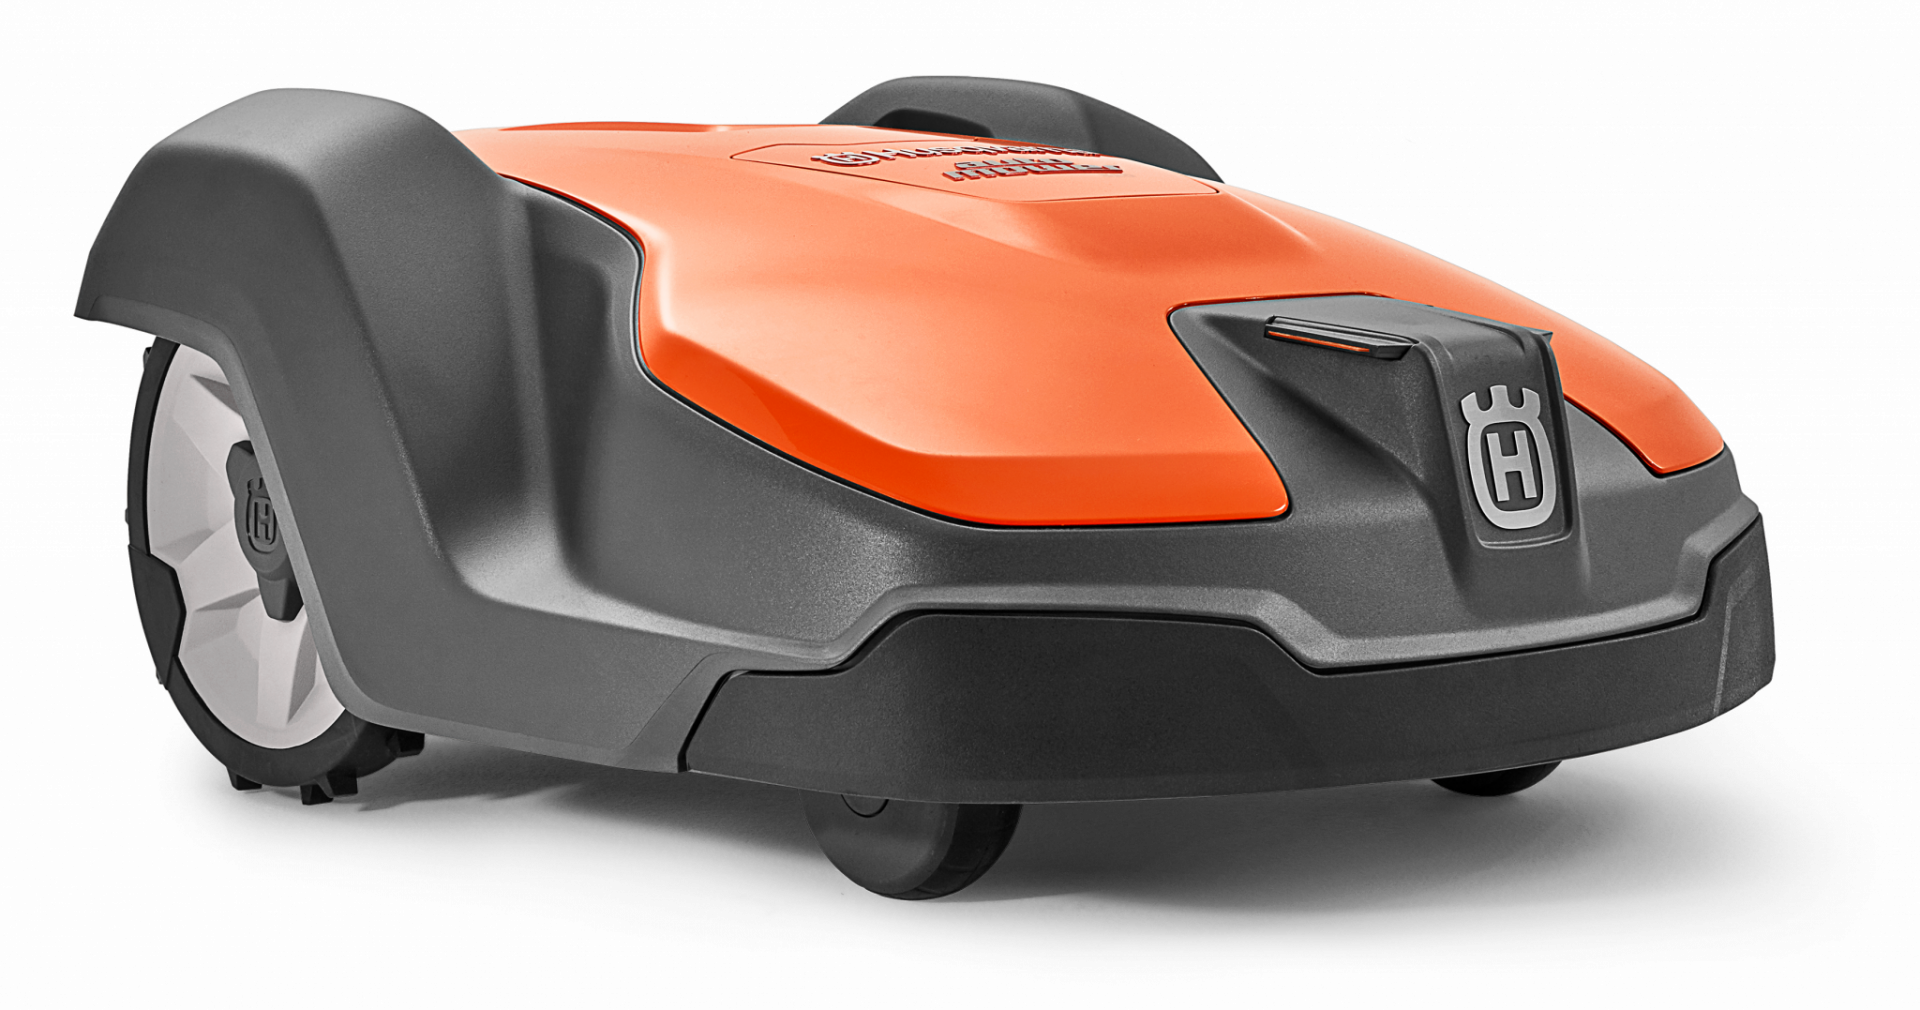 husqvarna automower 520 robotic lawnmower radmore tucker. Black Bedroom Furniture Sets. Home Design Ideas